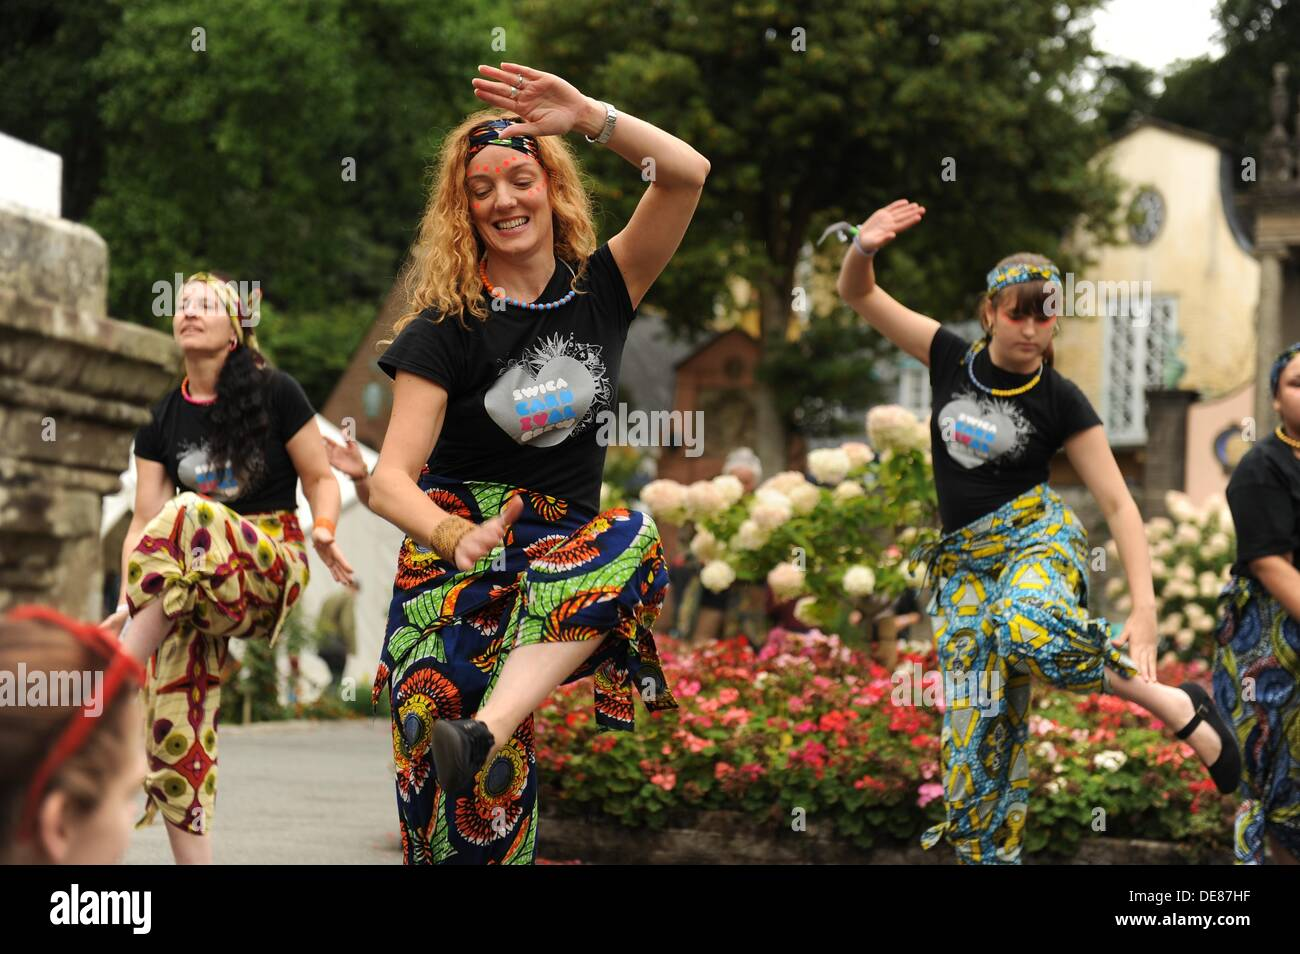 Portmeirion, Snowdonia, North Wales, UK. 13th Sep, 2013. Dancers from SWICCCA cardiff performing at the second Festival Stock Photo